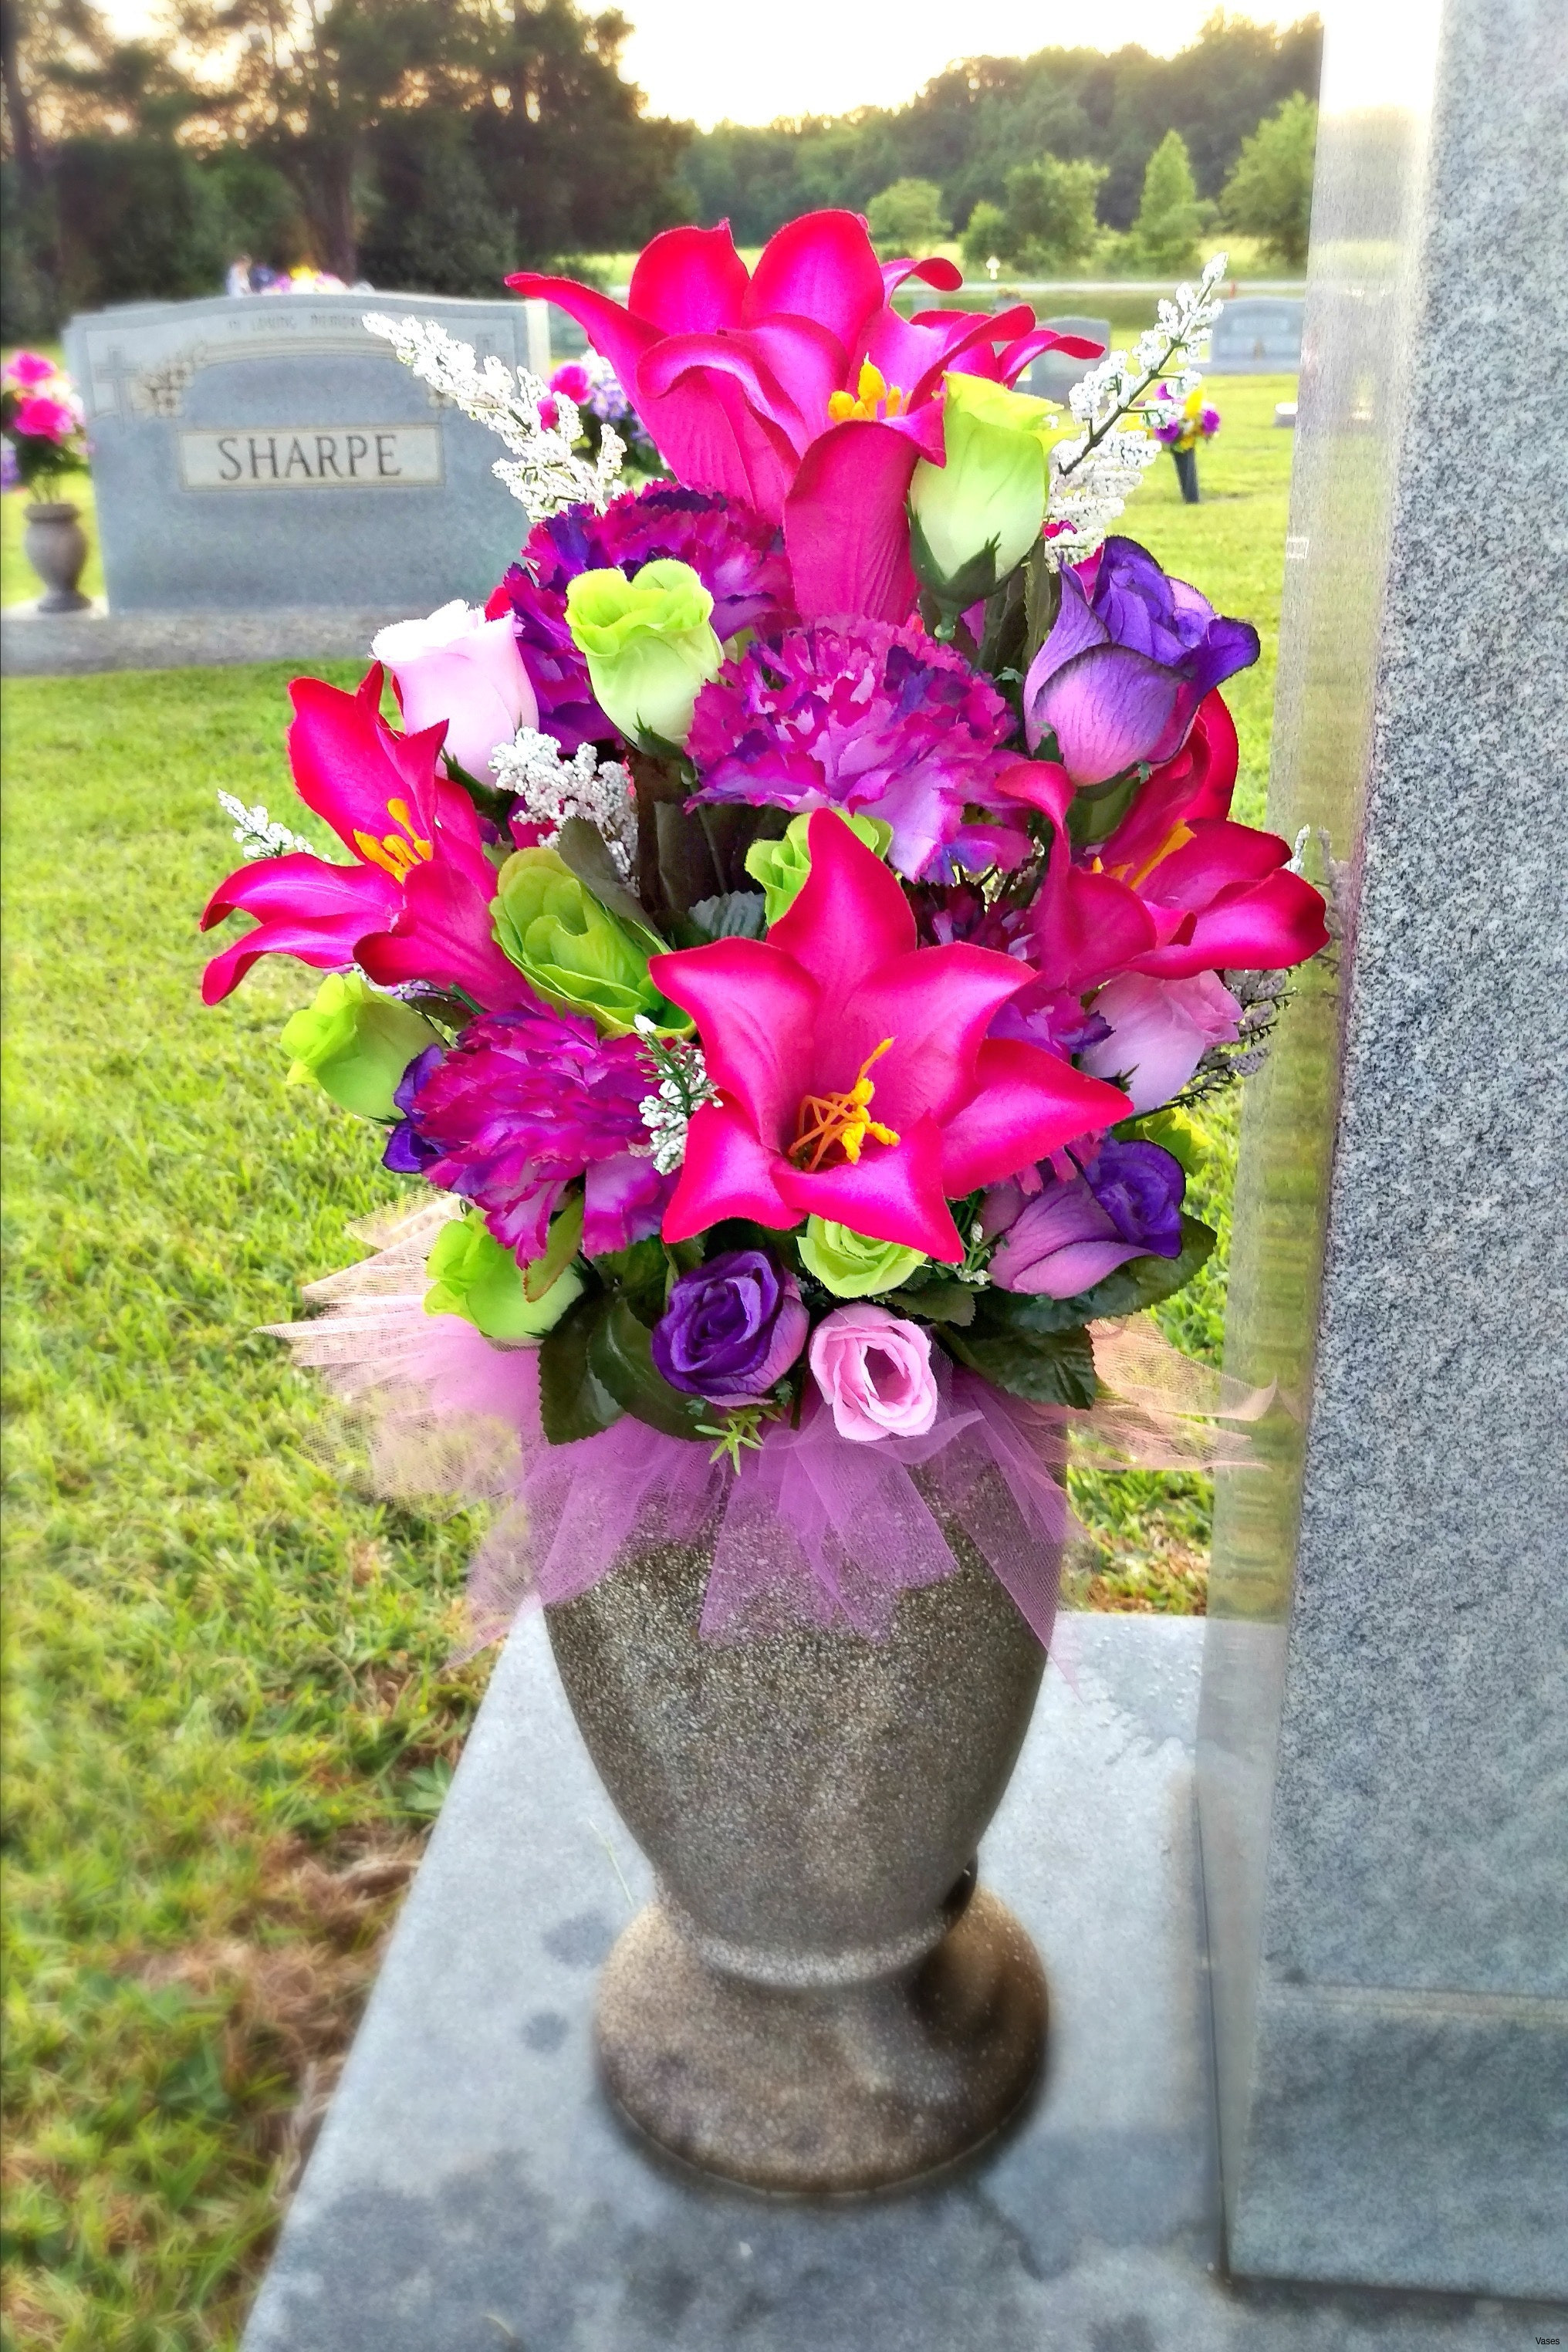 tombstone flower vases of in ground cemetery vases images vases grave flower vase cemetery pertaining to in ground cemetery vases images vases grave flower vase cemetery informationi 0d in ground holders of